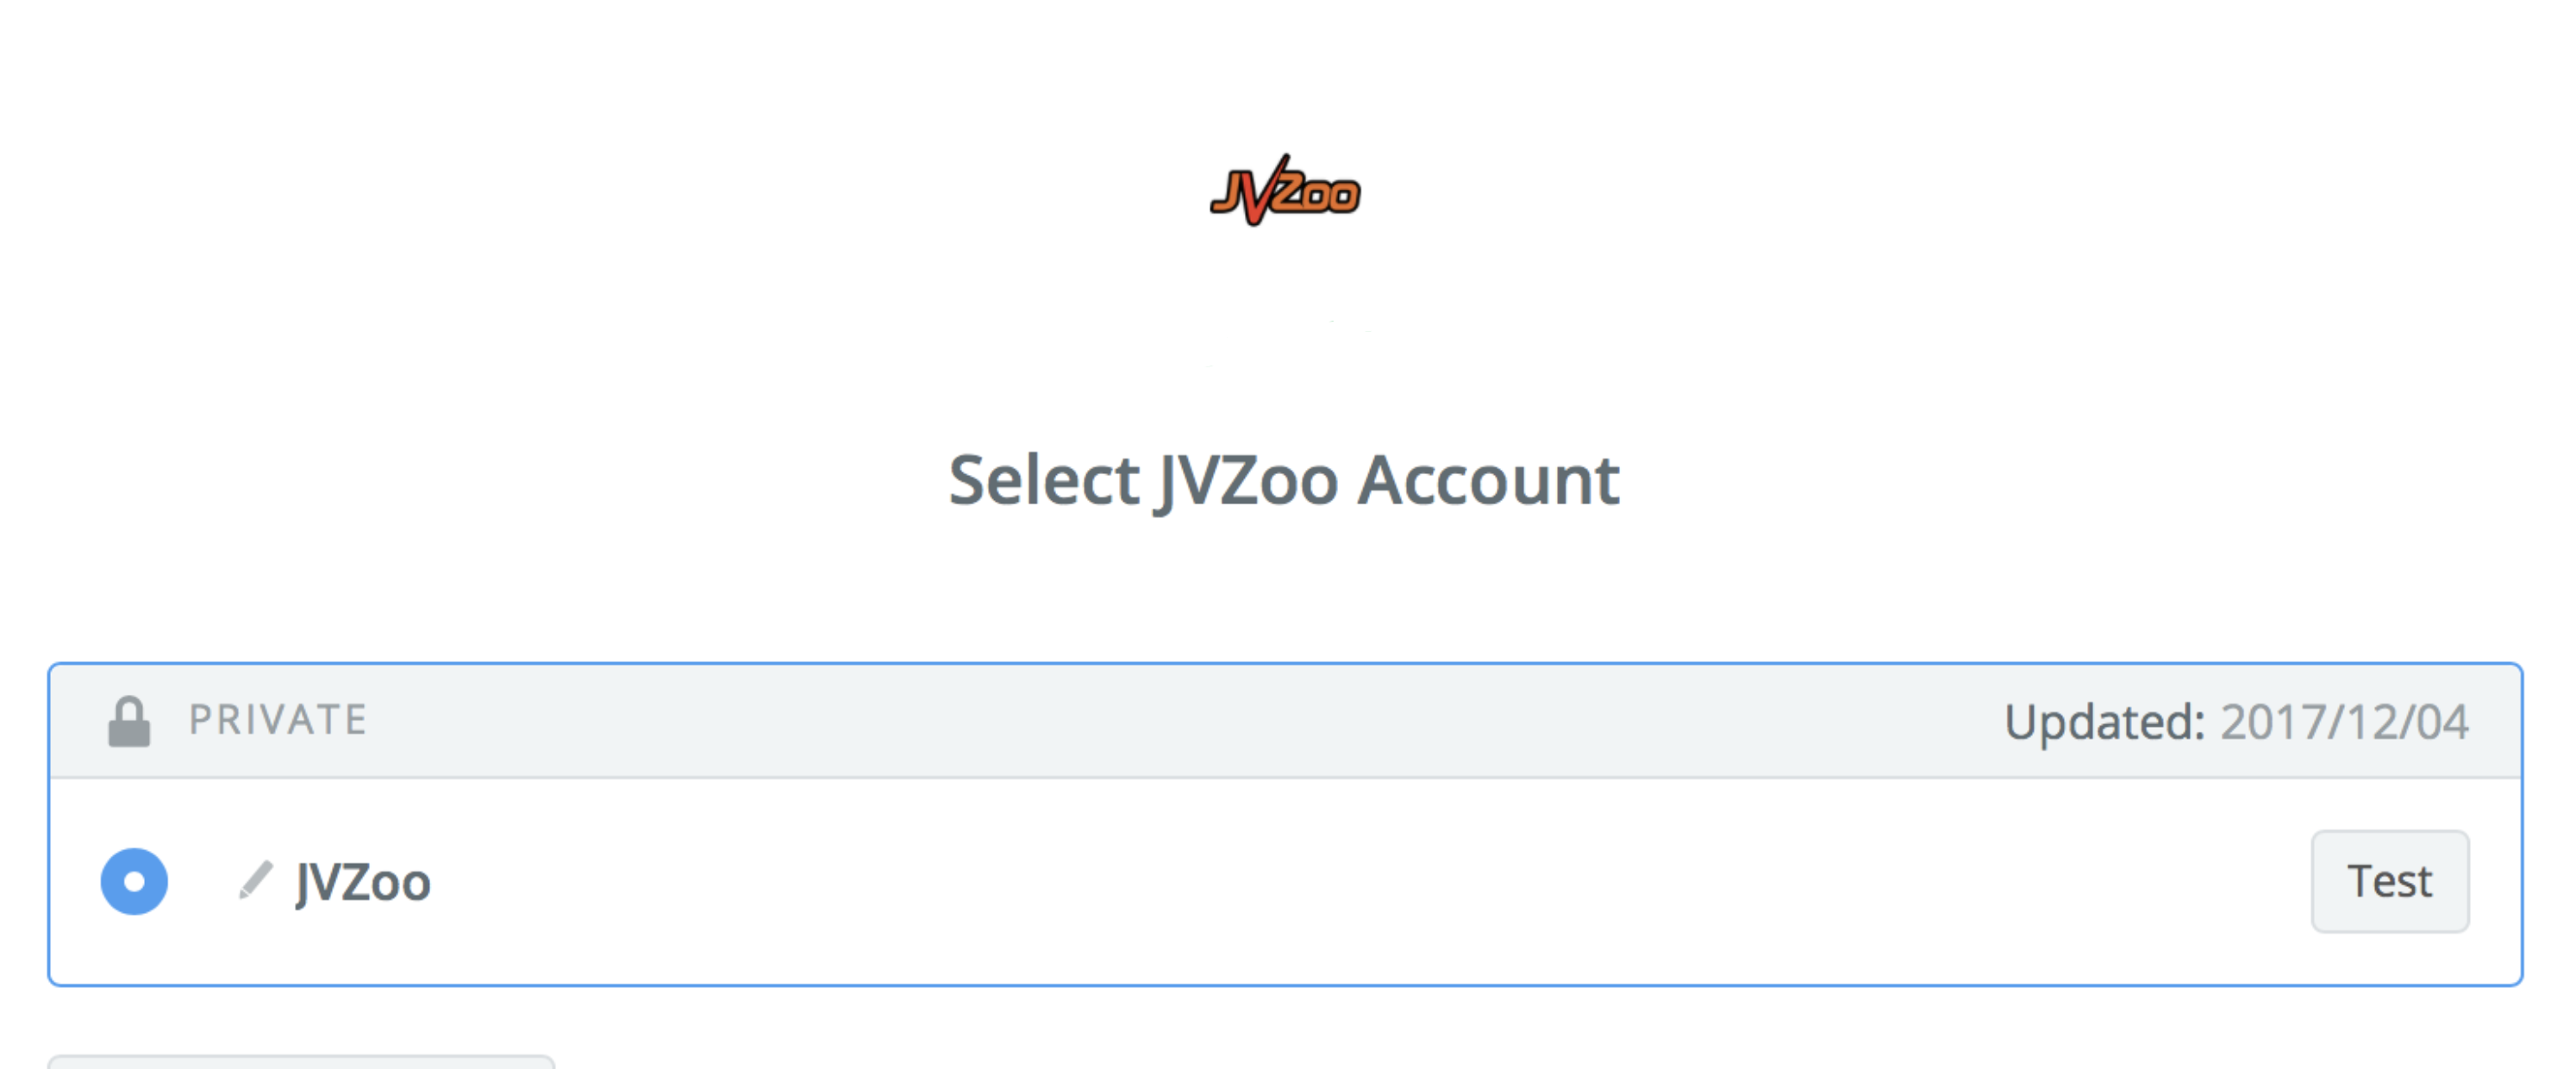 JVZoo connection successfull